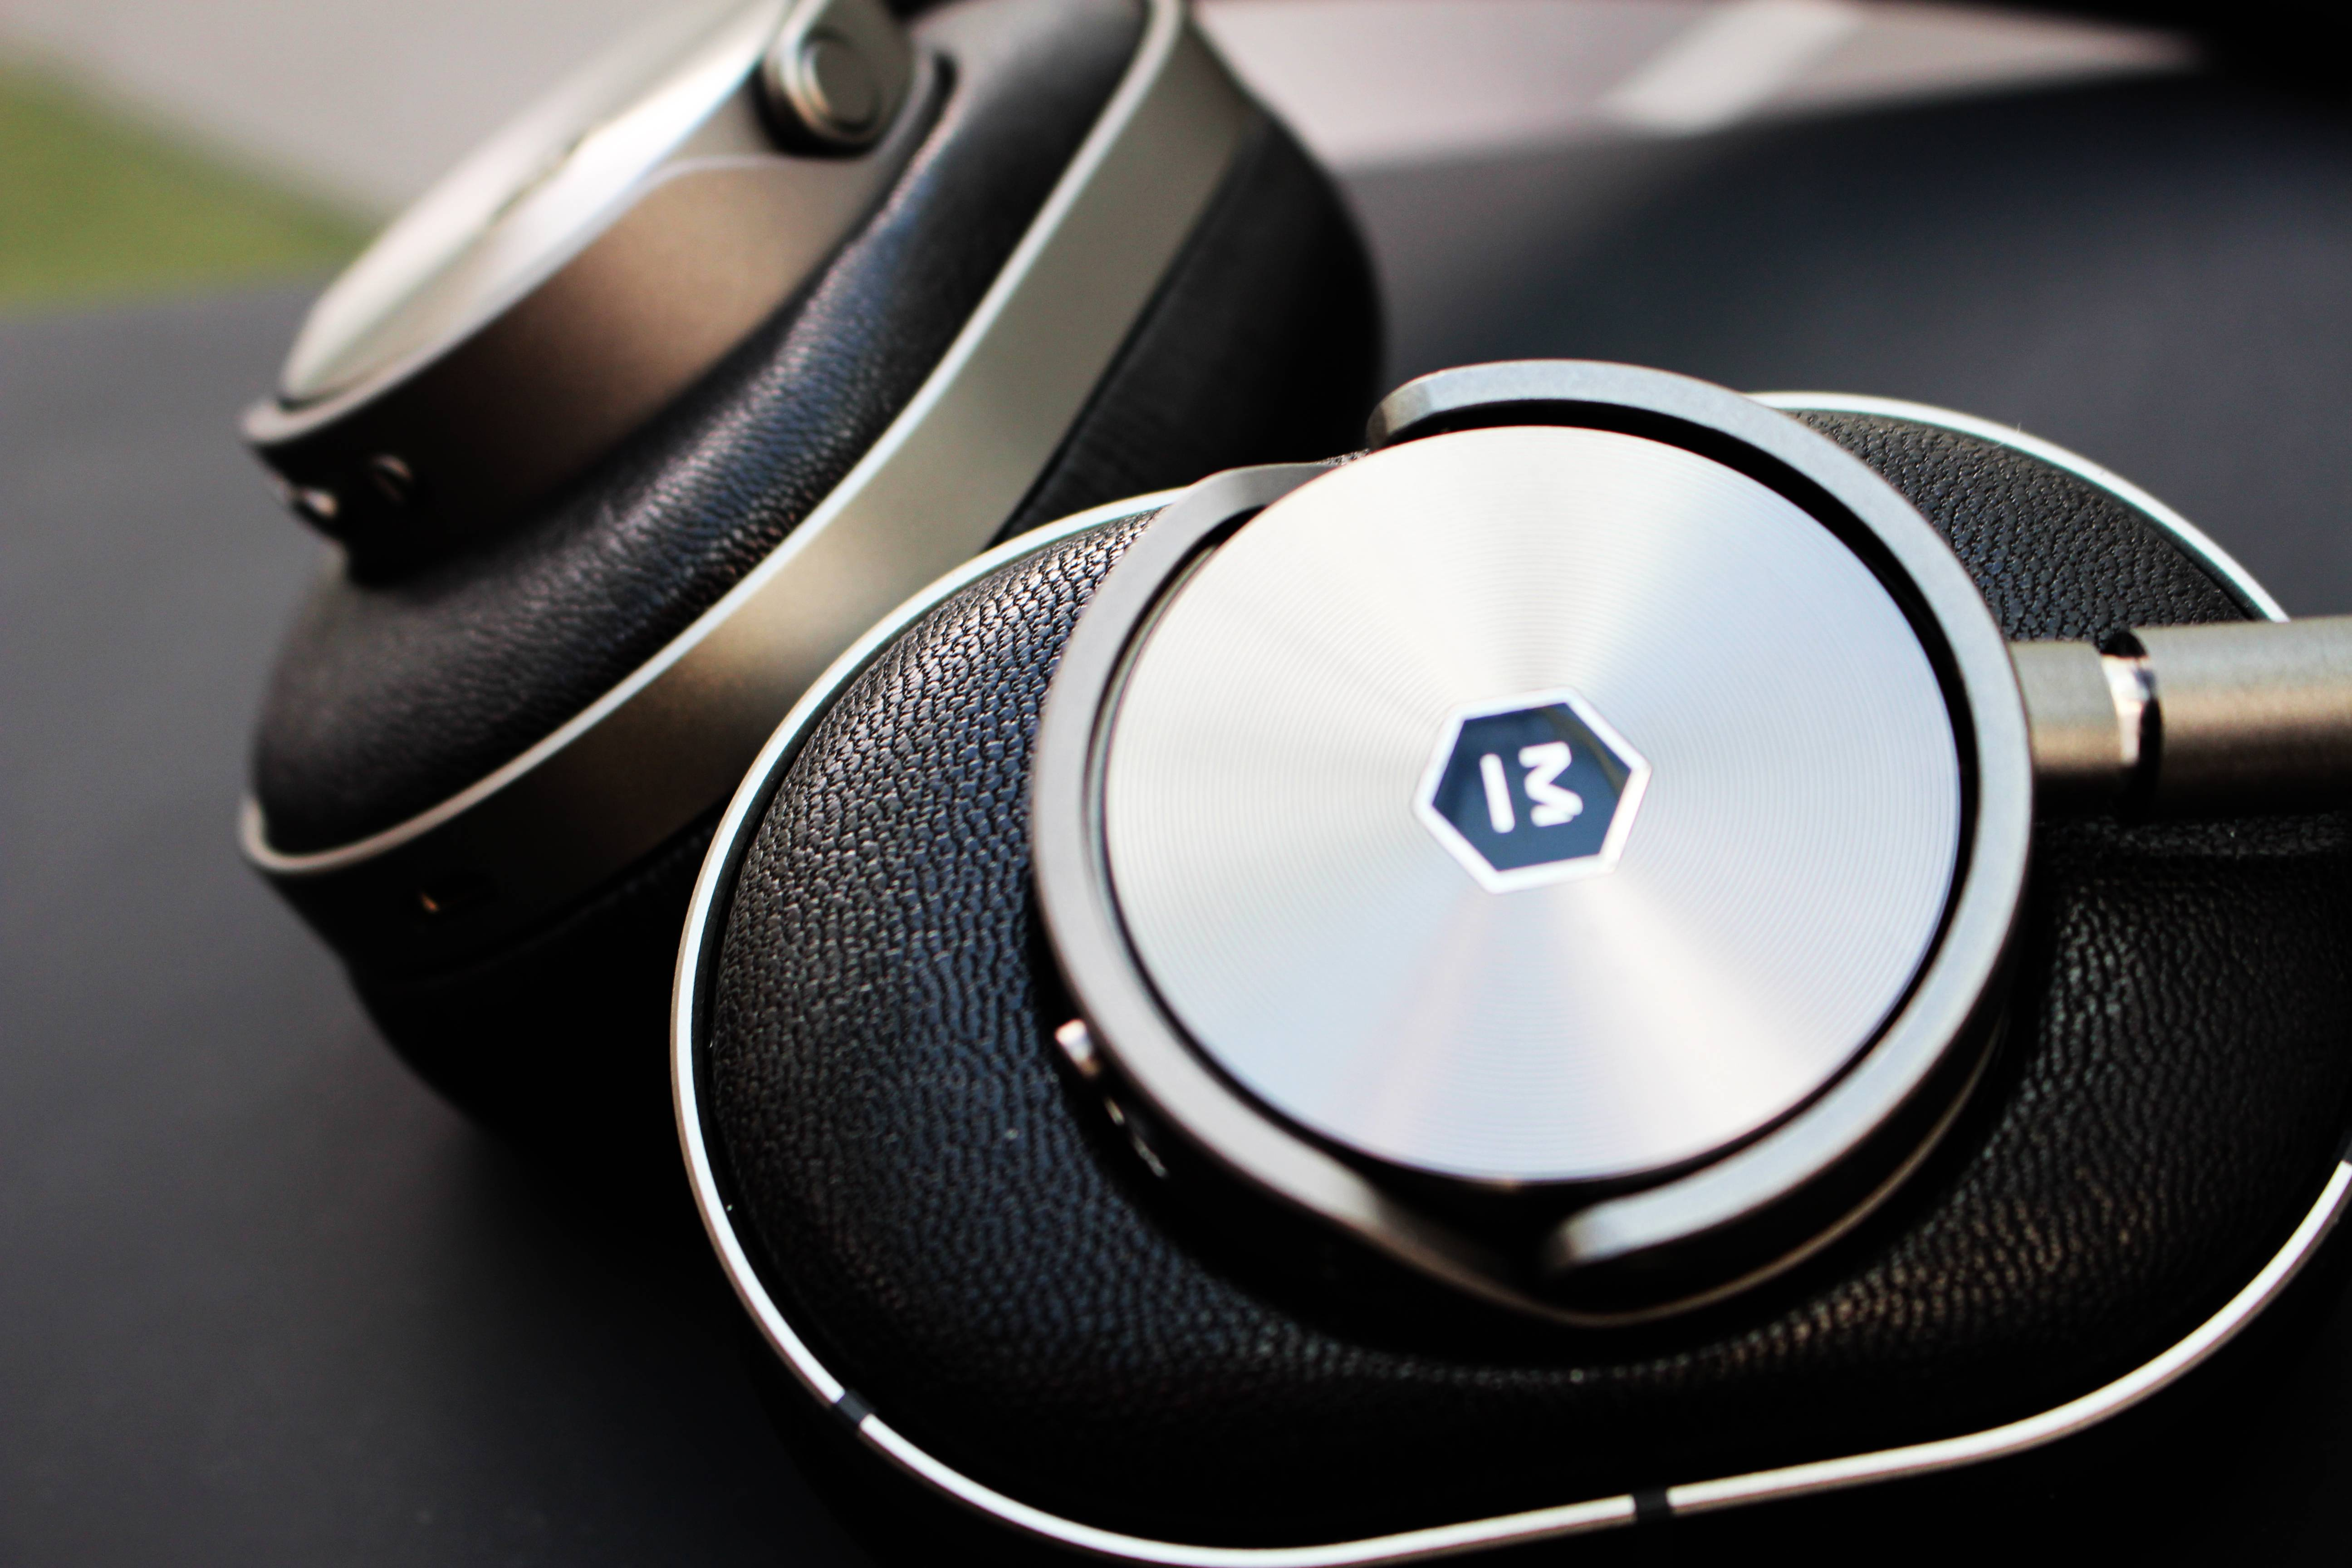 Review: Master & Dynamic MW60 Headphones